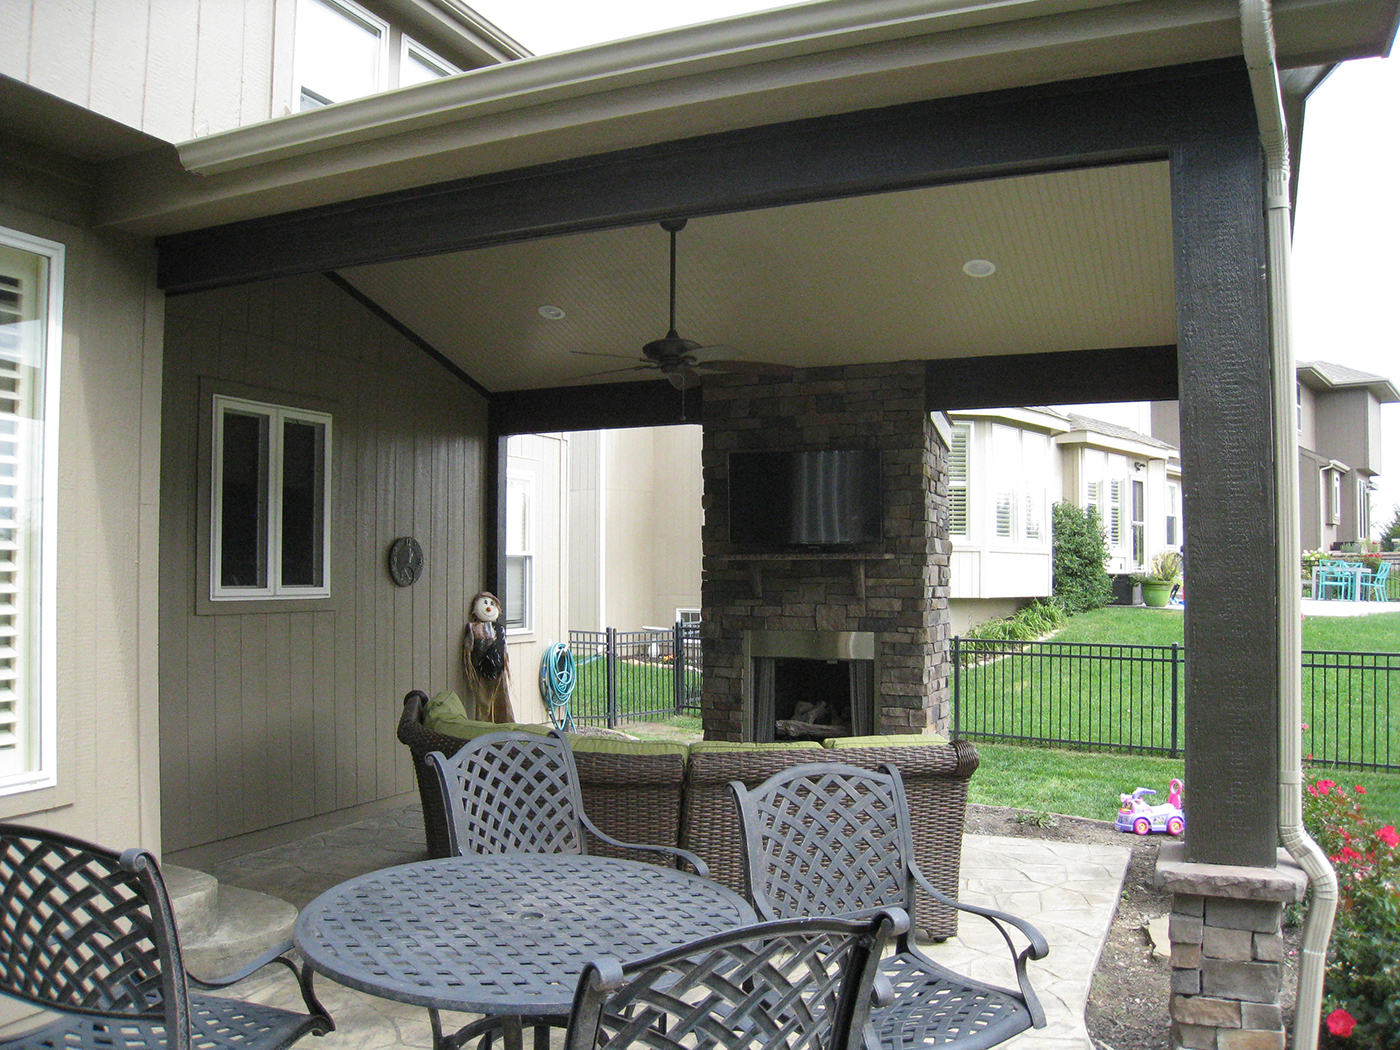 With A Roof This Olathe Patio Is Simply A Whole Different Outdoor Space Archadeck Outdoor Living